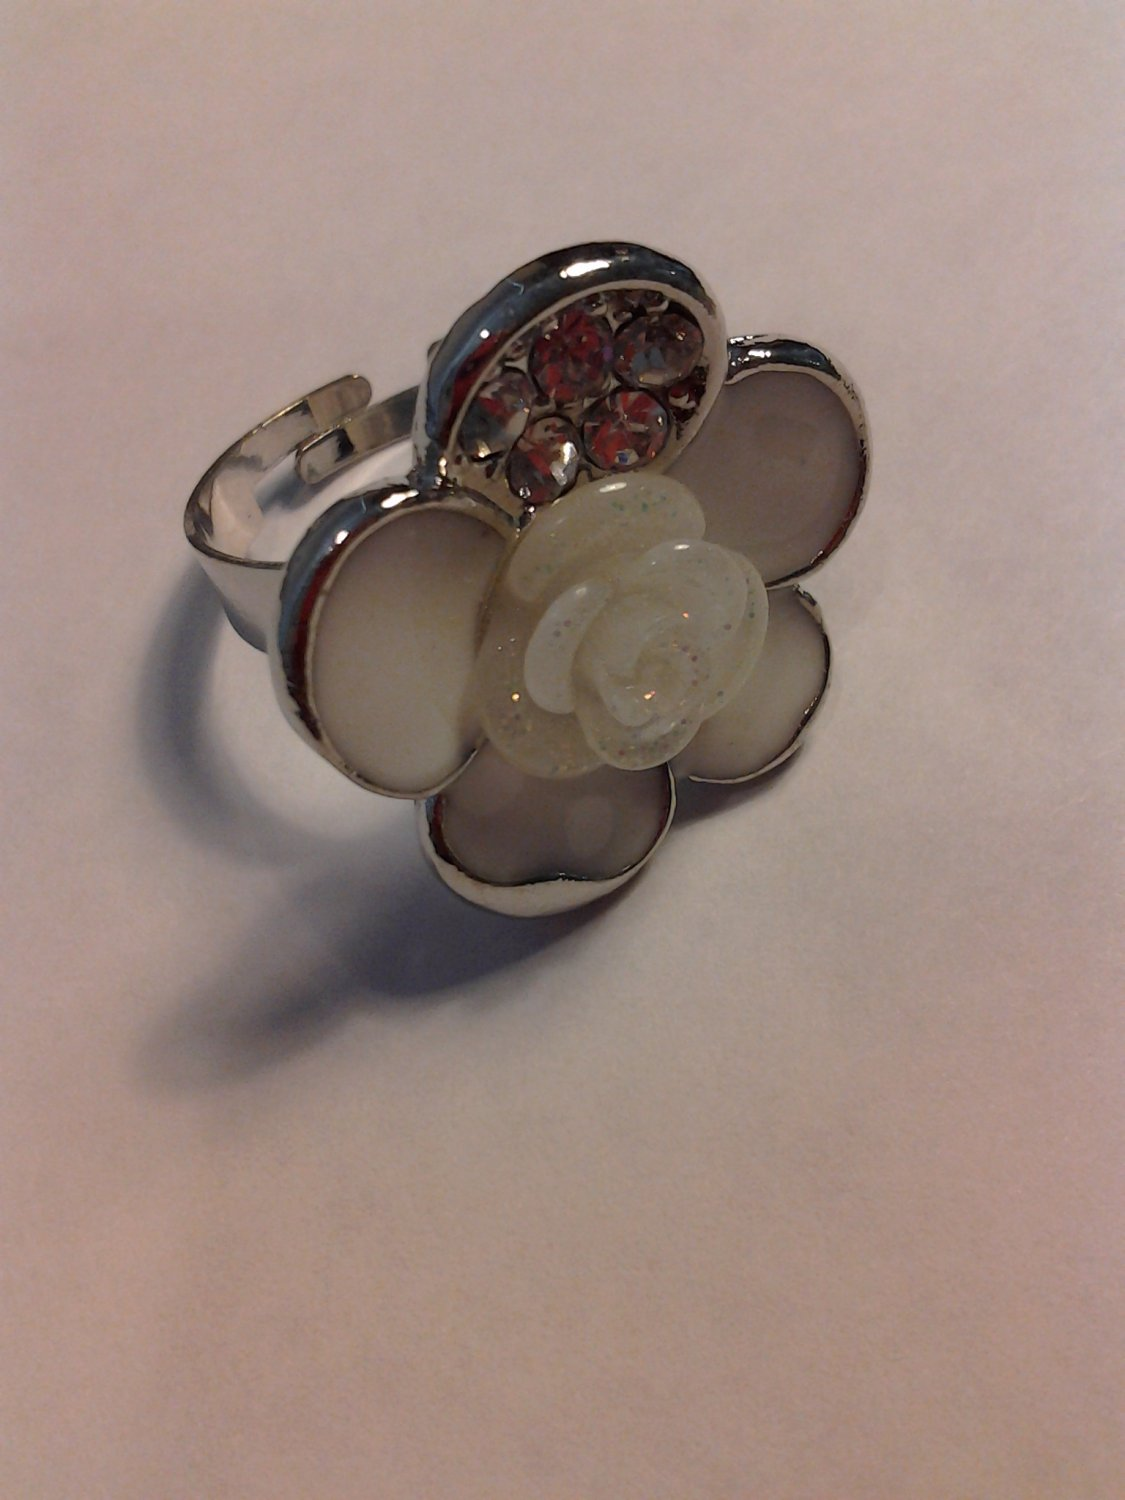 Brand New Beautiful White Adjustable Silver Ring WIth Bling